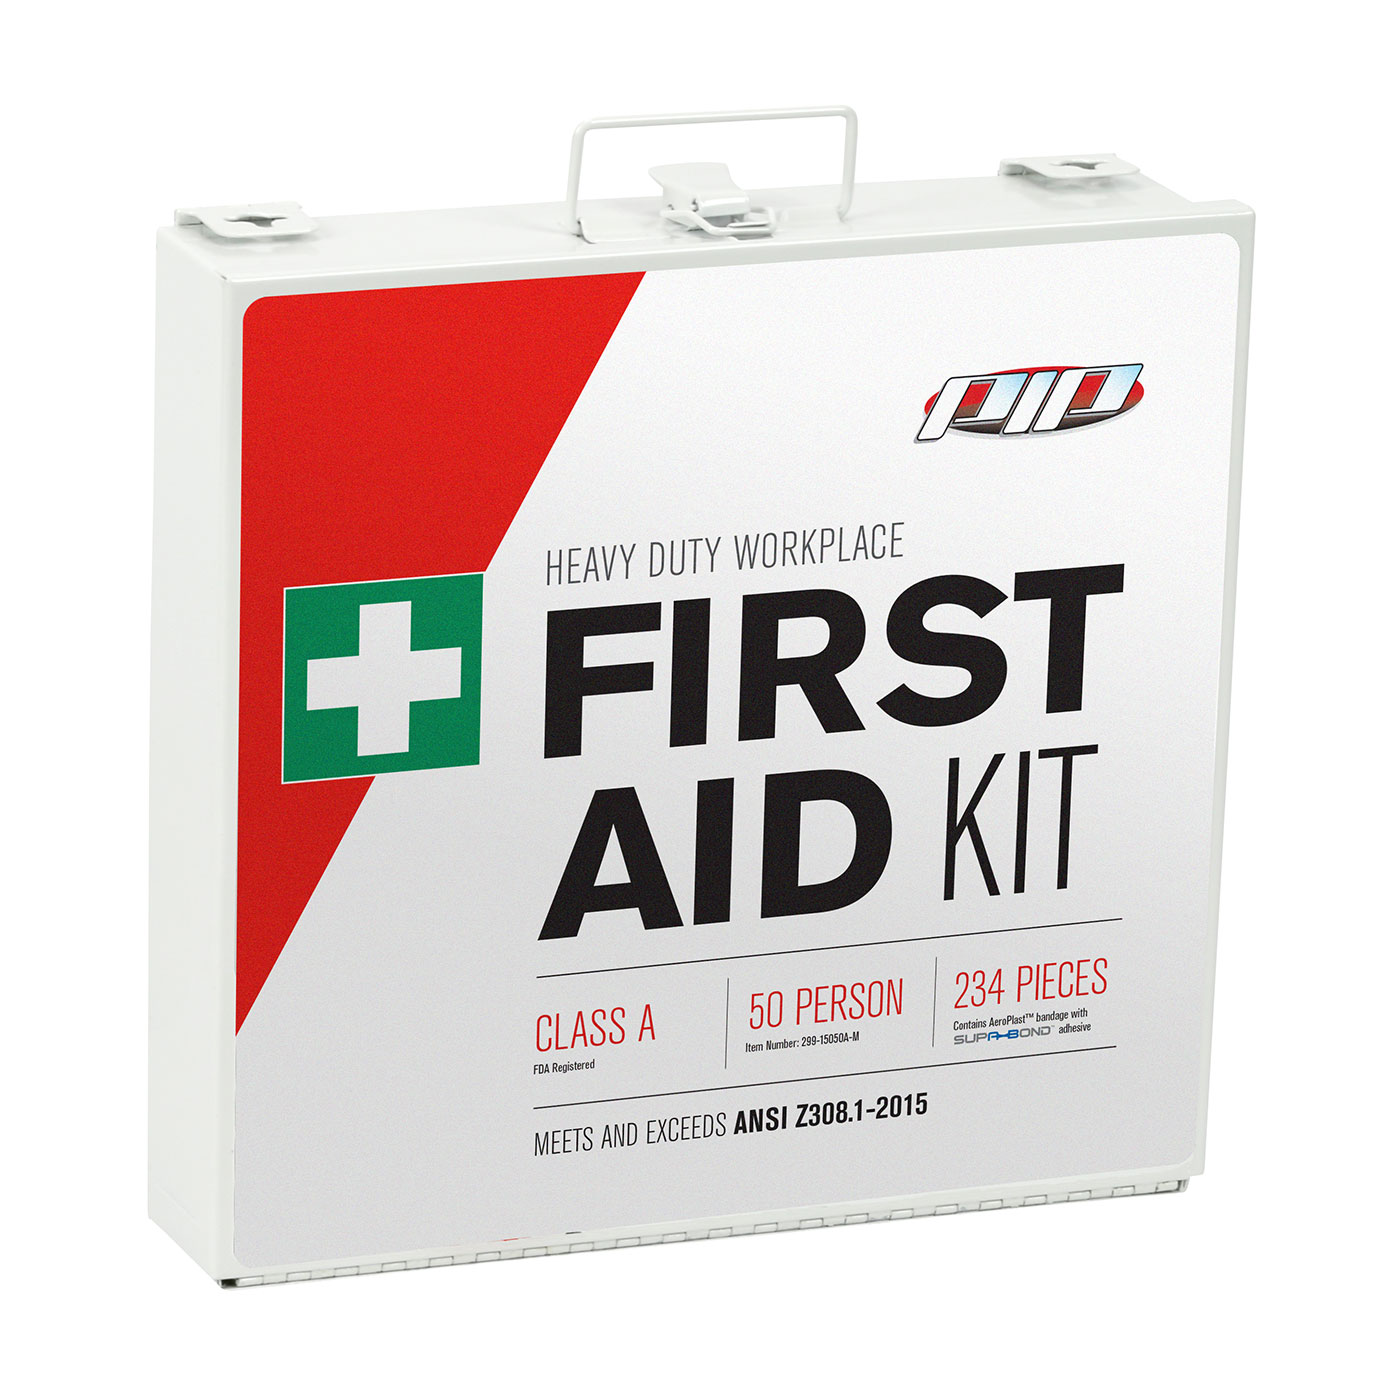 ANSI Class A Metal First Aid Kit - 50 Person, White, KIT